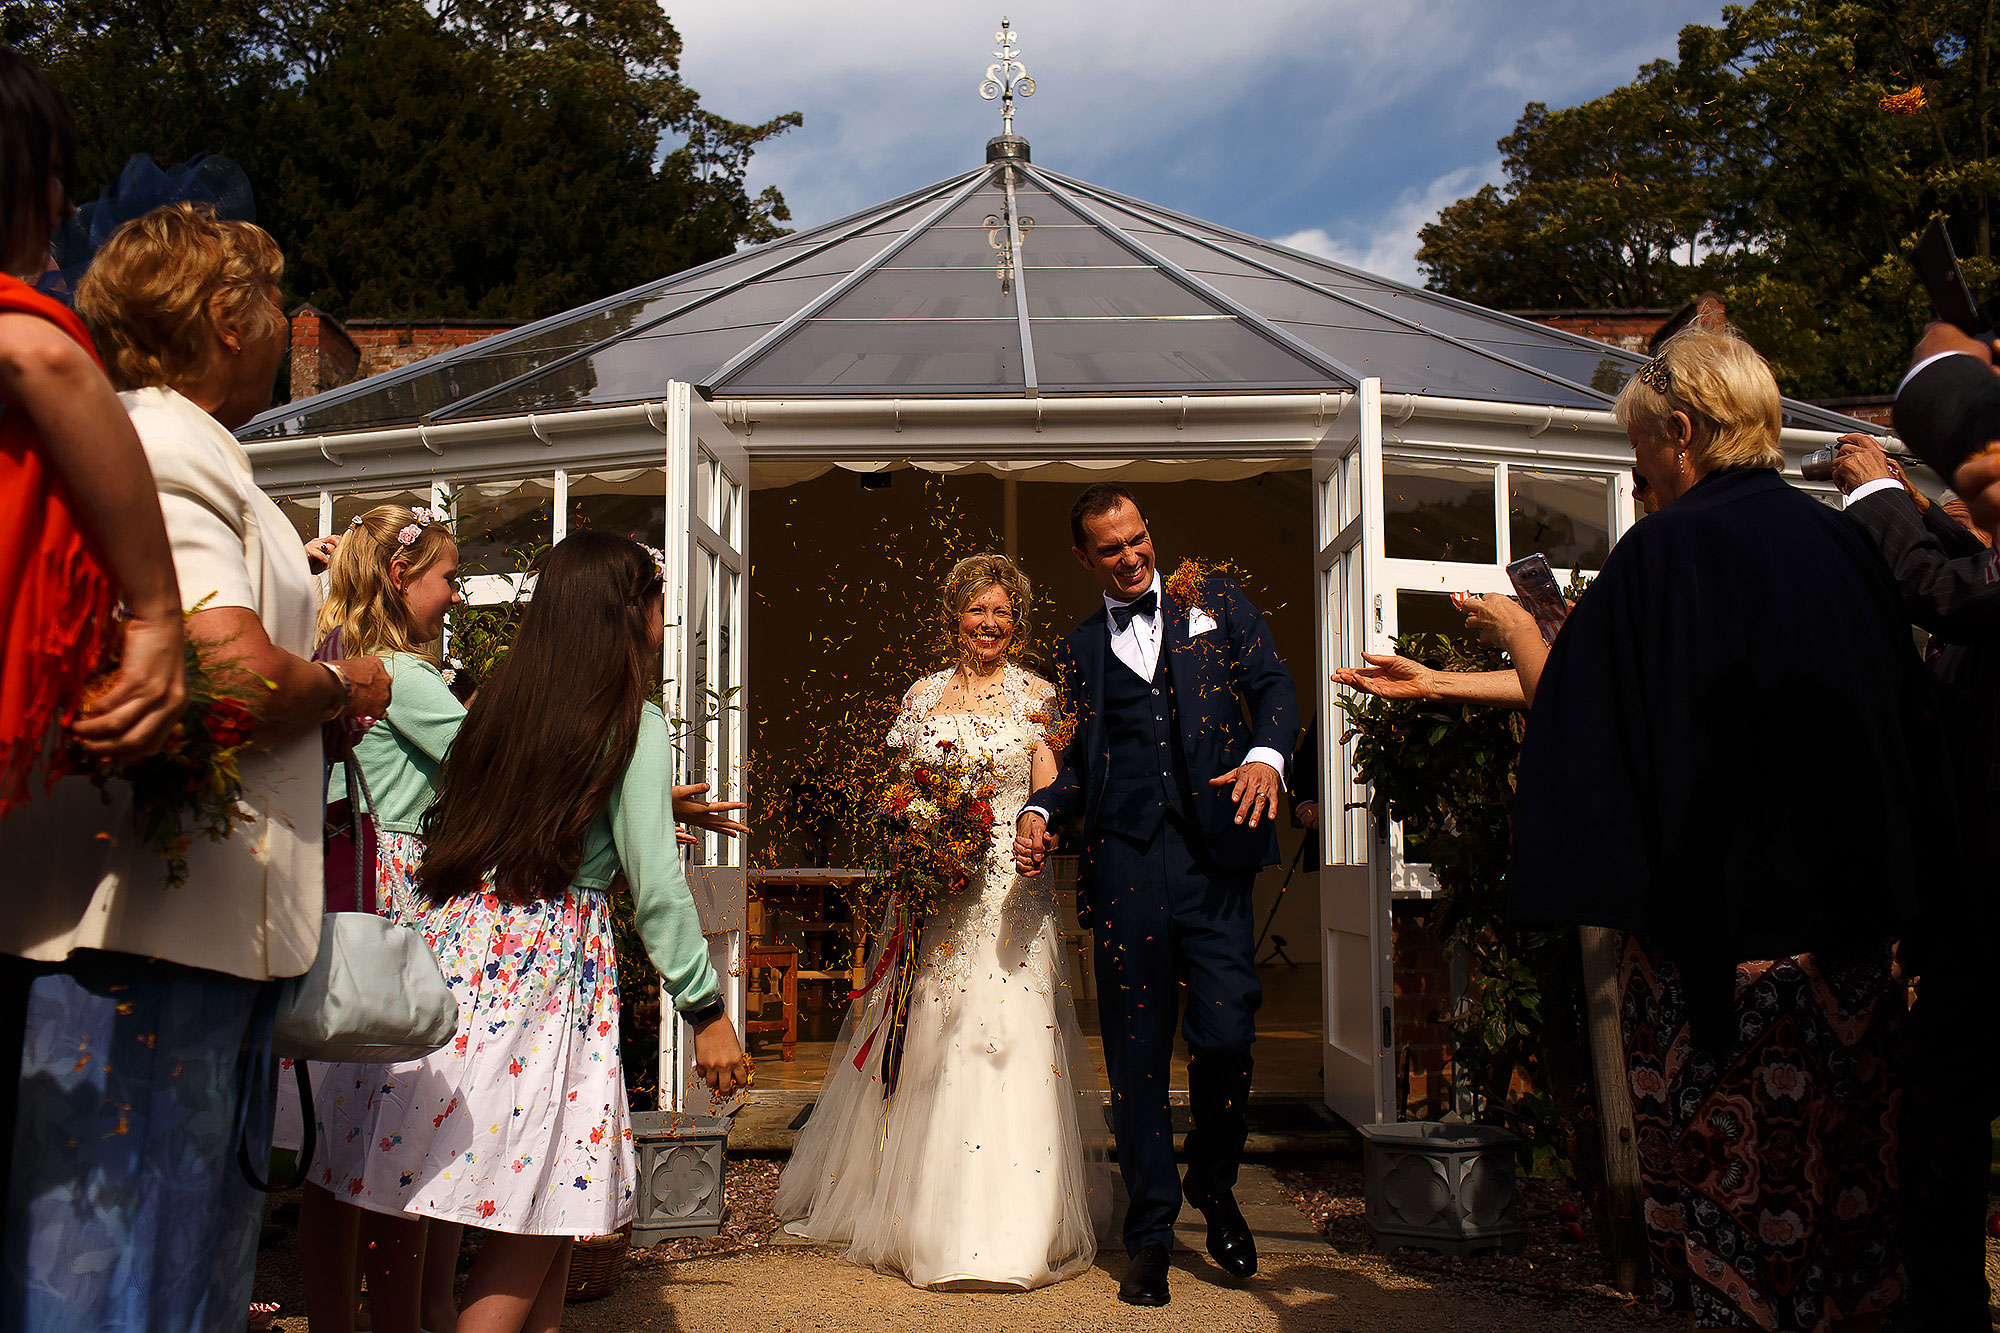 Bride and groom walking out of the french doors of the orangerie at Combermere Abbey Wedding into the confetti